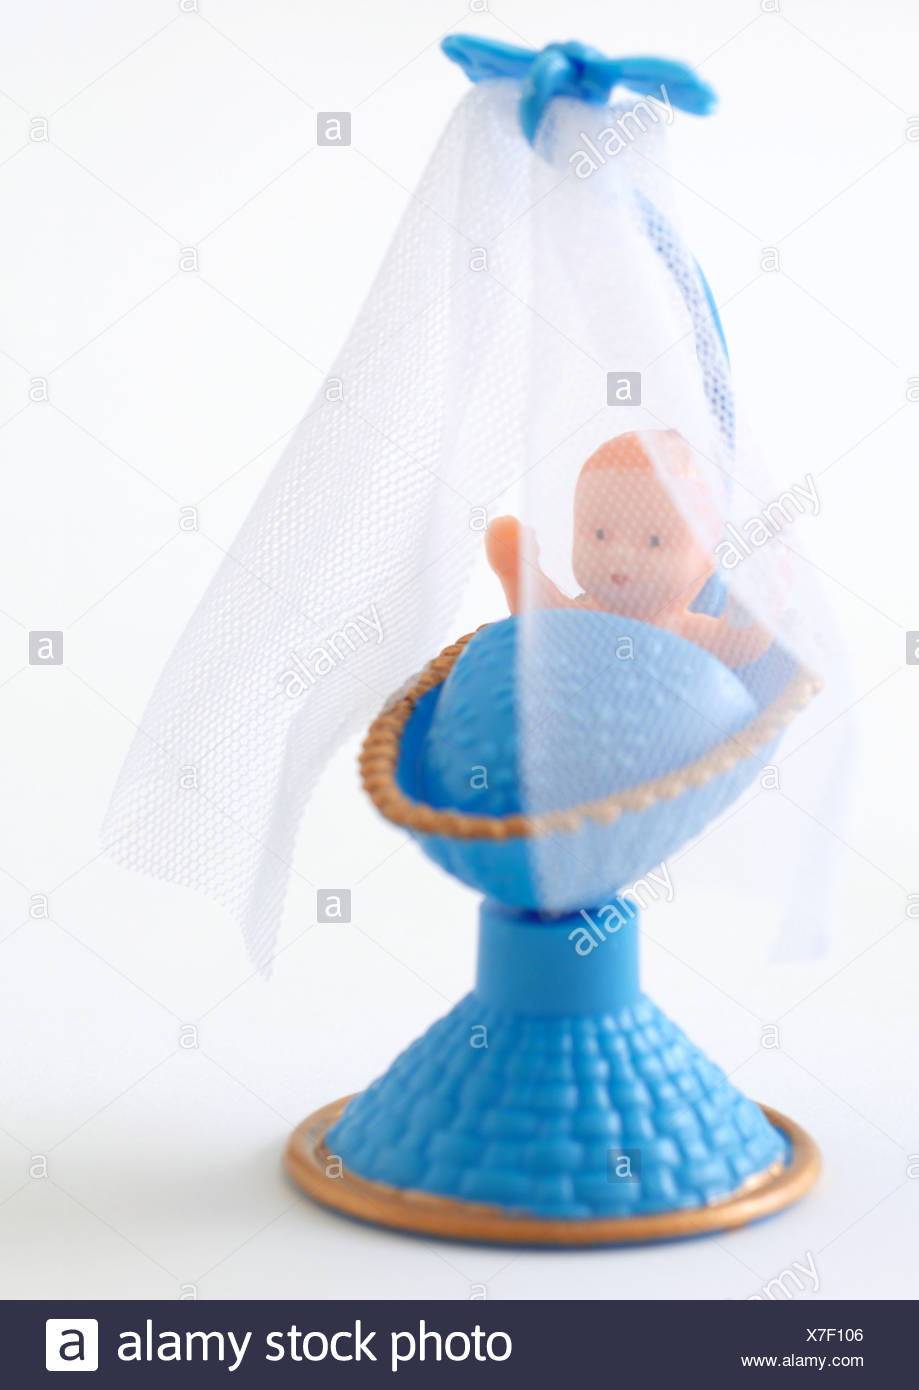 Plastic baby in blue crib - Stock Image